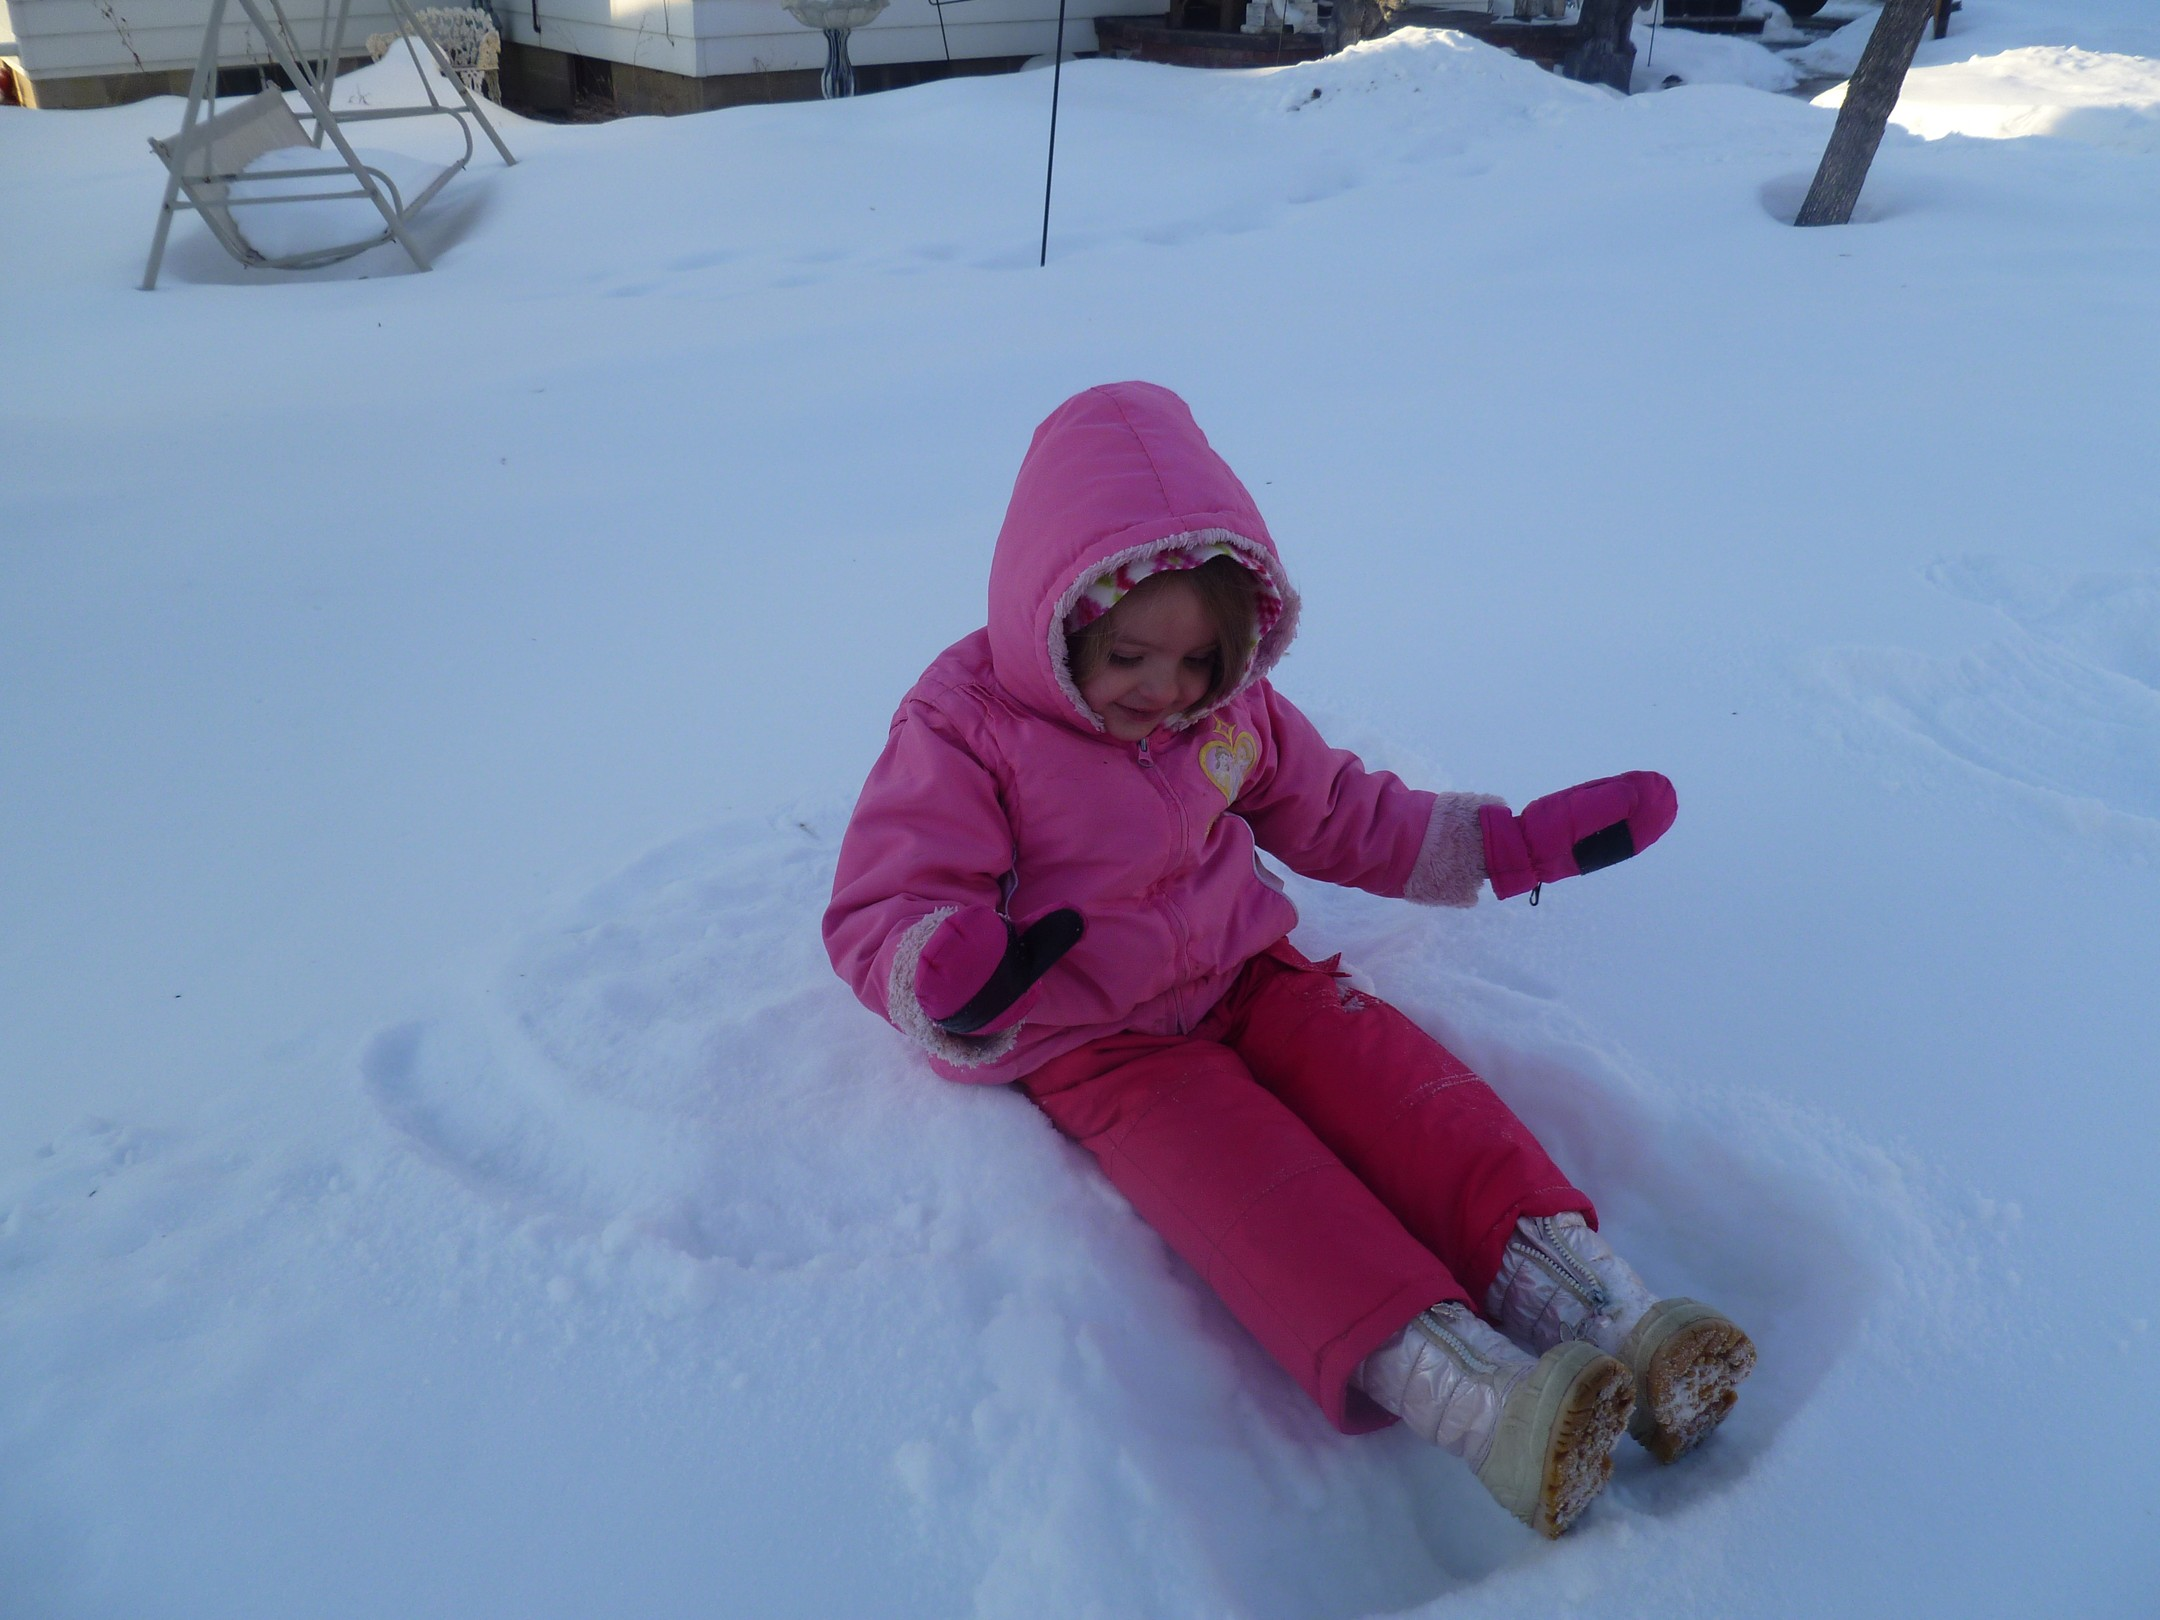 And last snow angel